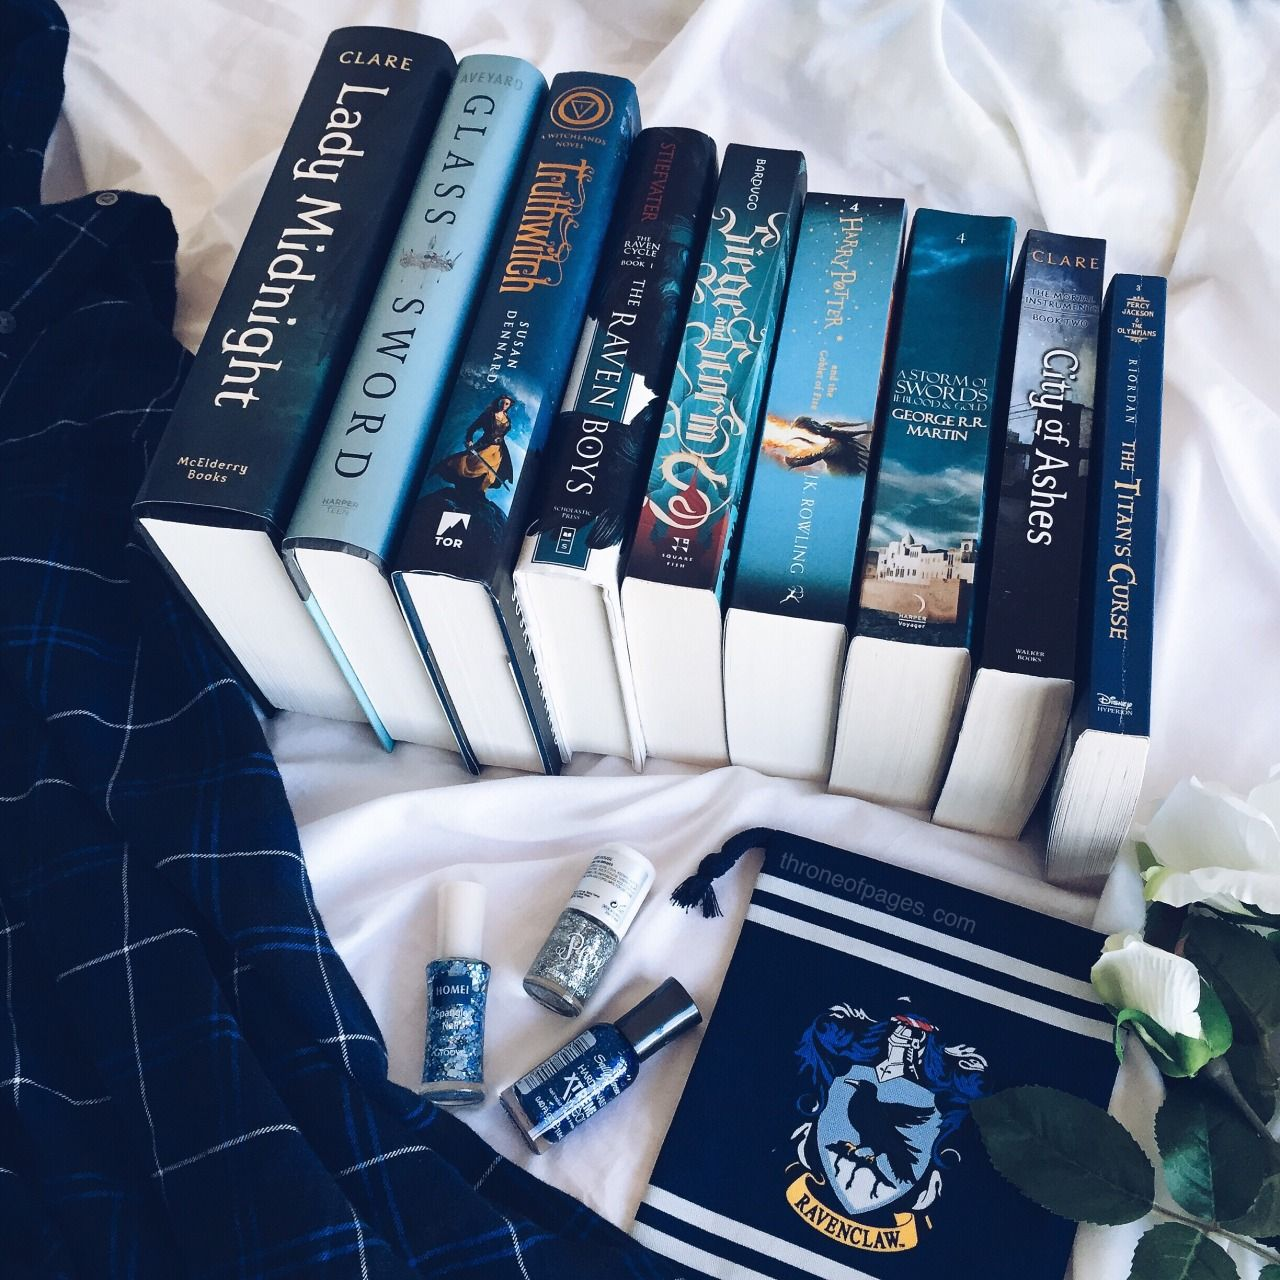 The Ya Literature Bookshelf Throne Of Pages Blue Fantasy Books Ravenclaw Ravenclaw Aesthetic Fantasy Books